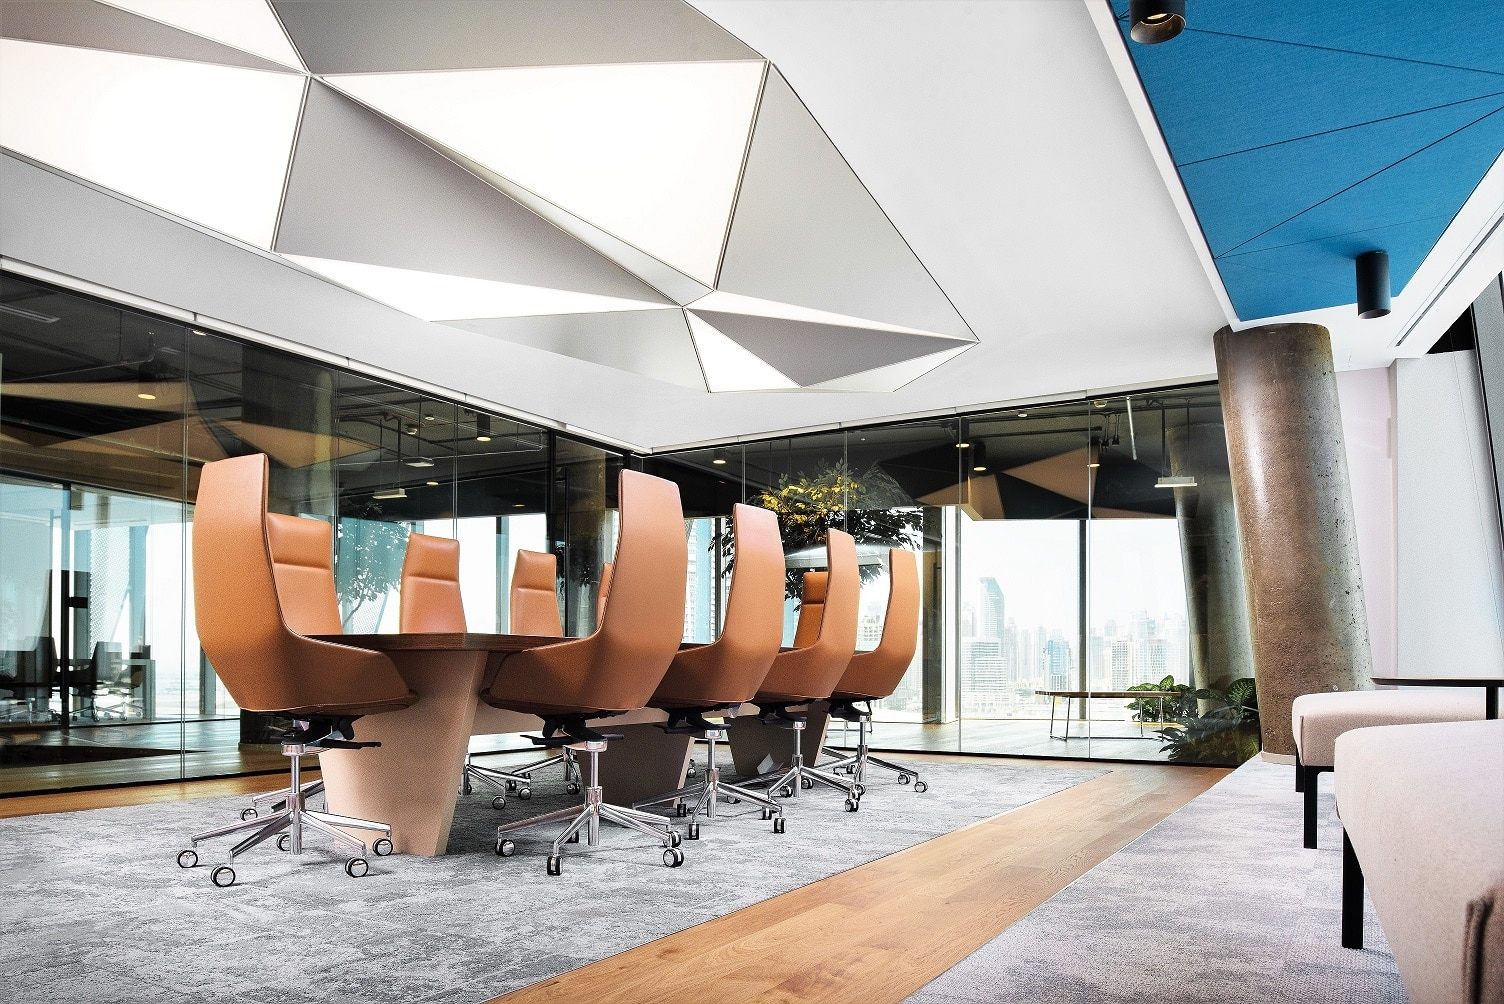 Why LED Lighting is the Most Efficient Way to Light Up Your Workspace